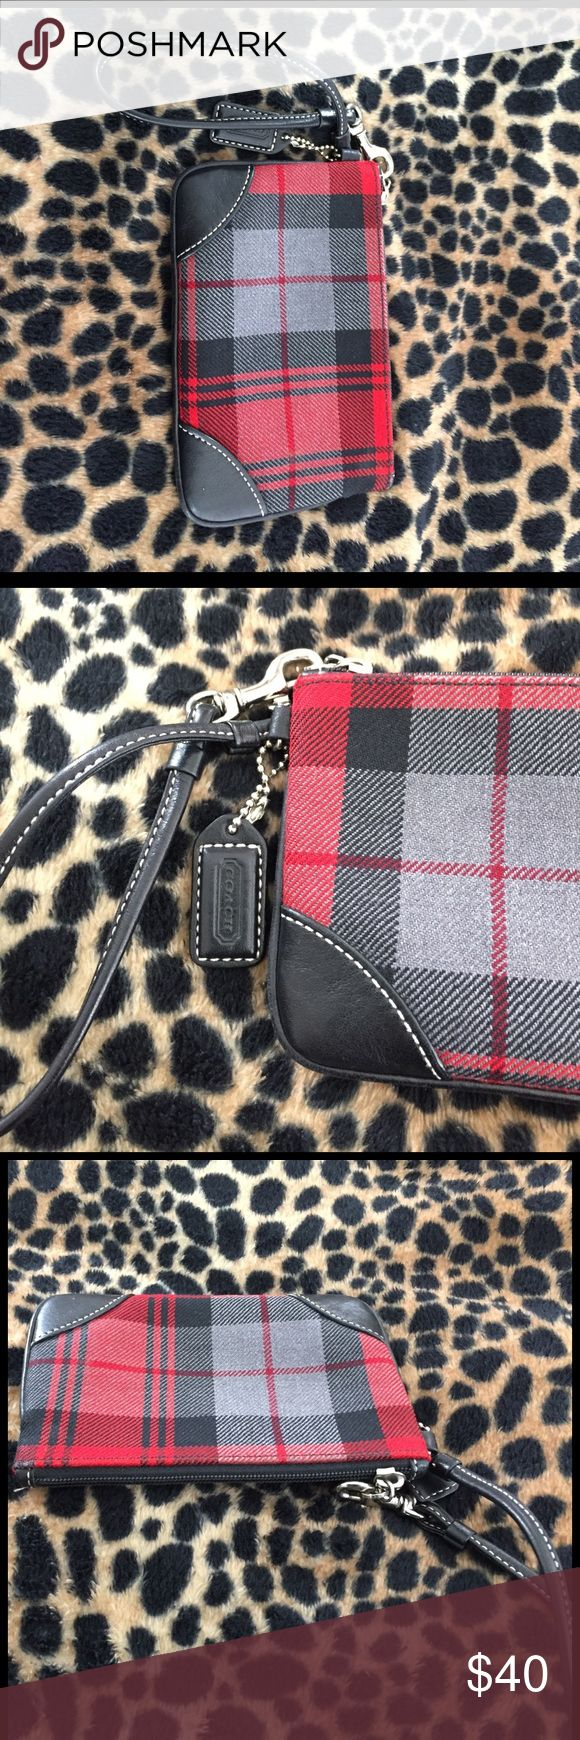 Plaid red and black Coach coin purse Coach red, black grey coin purse Coach Bags Clutches & Wristlets